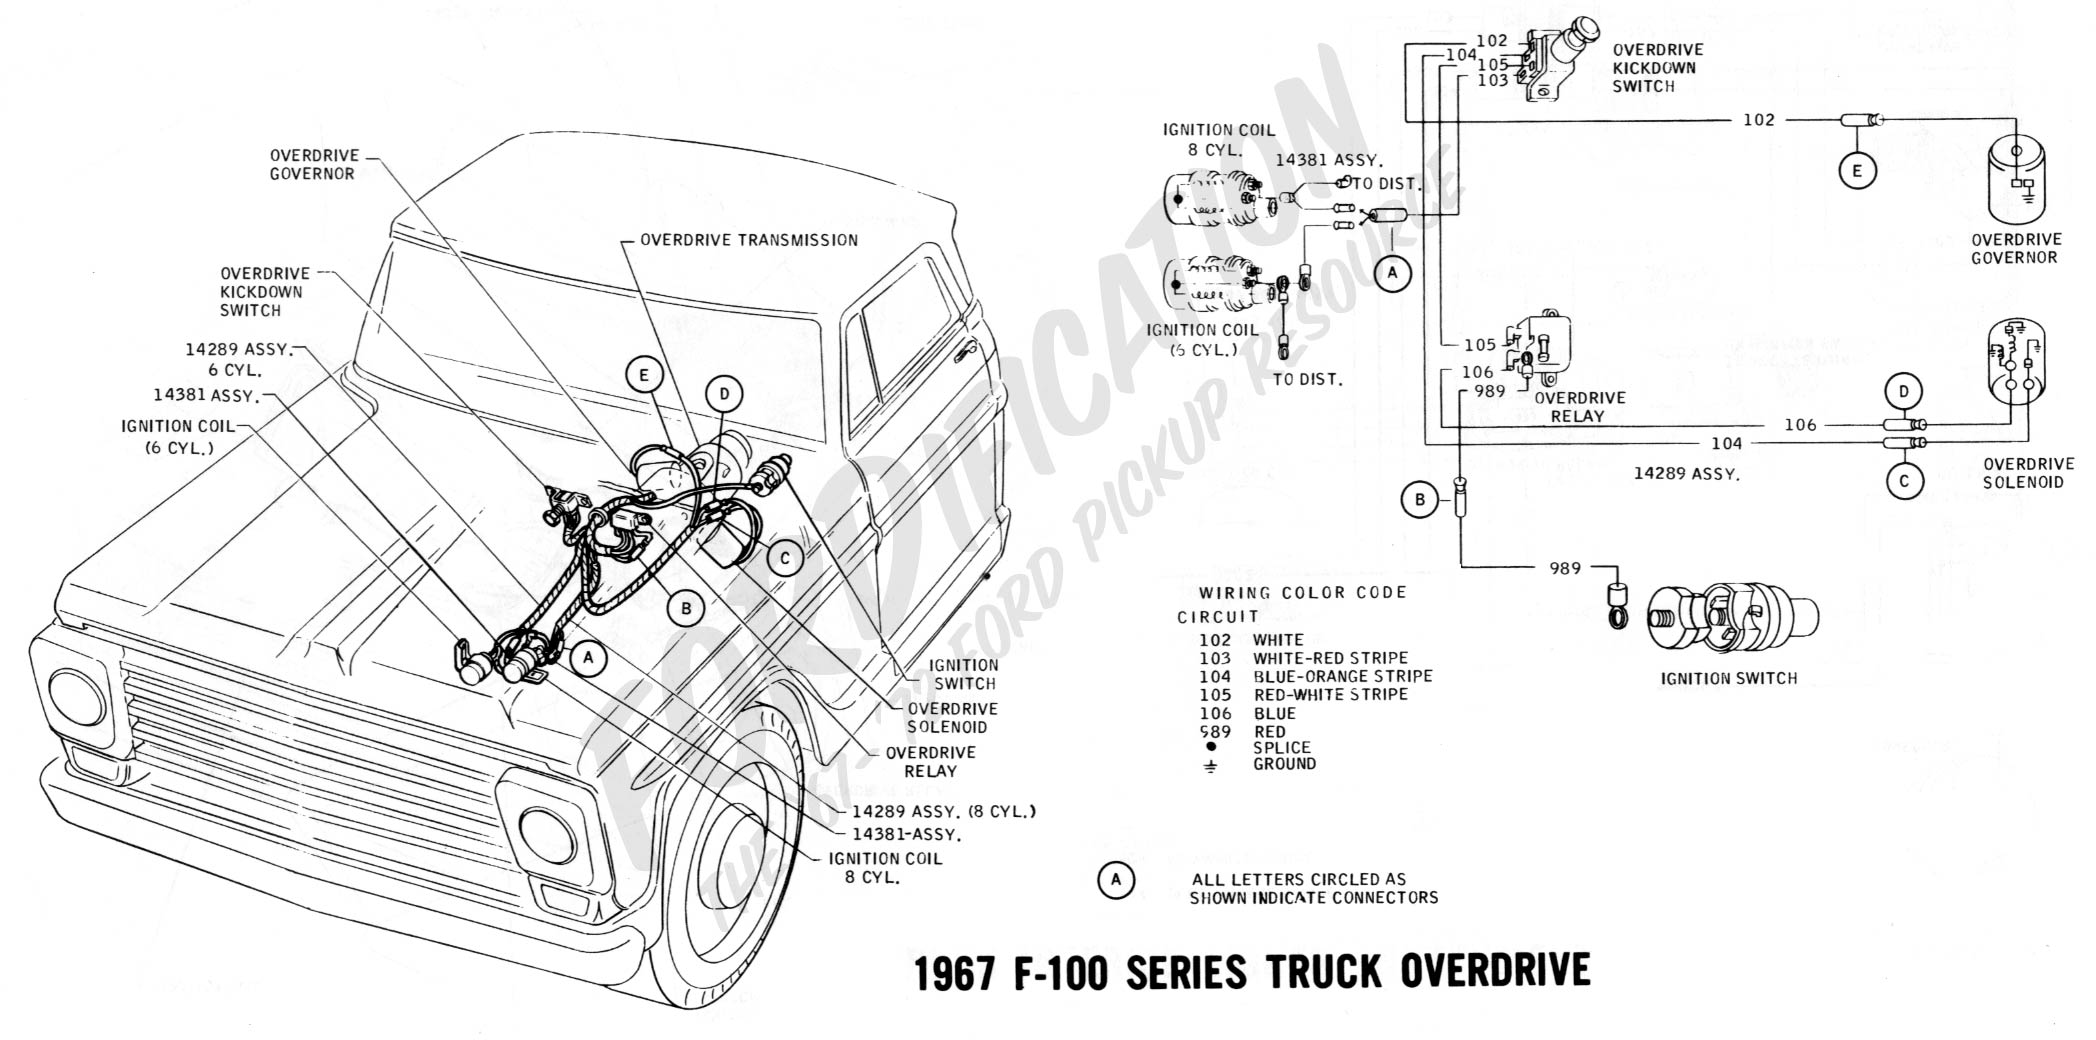 wiring 1967overdrive2 ford truck technical drawings and schematics section h wiring 1966 ford truck wiring diagram at crackthecode.co